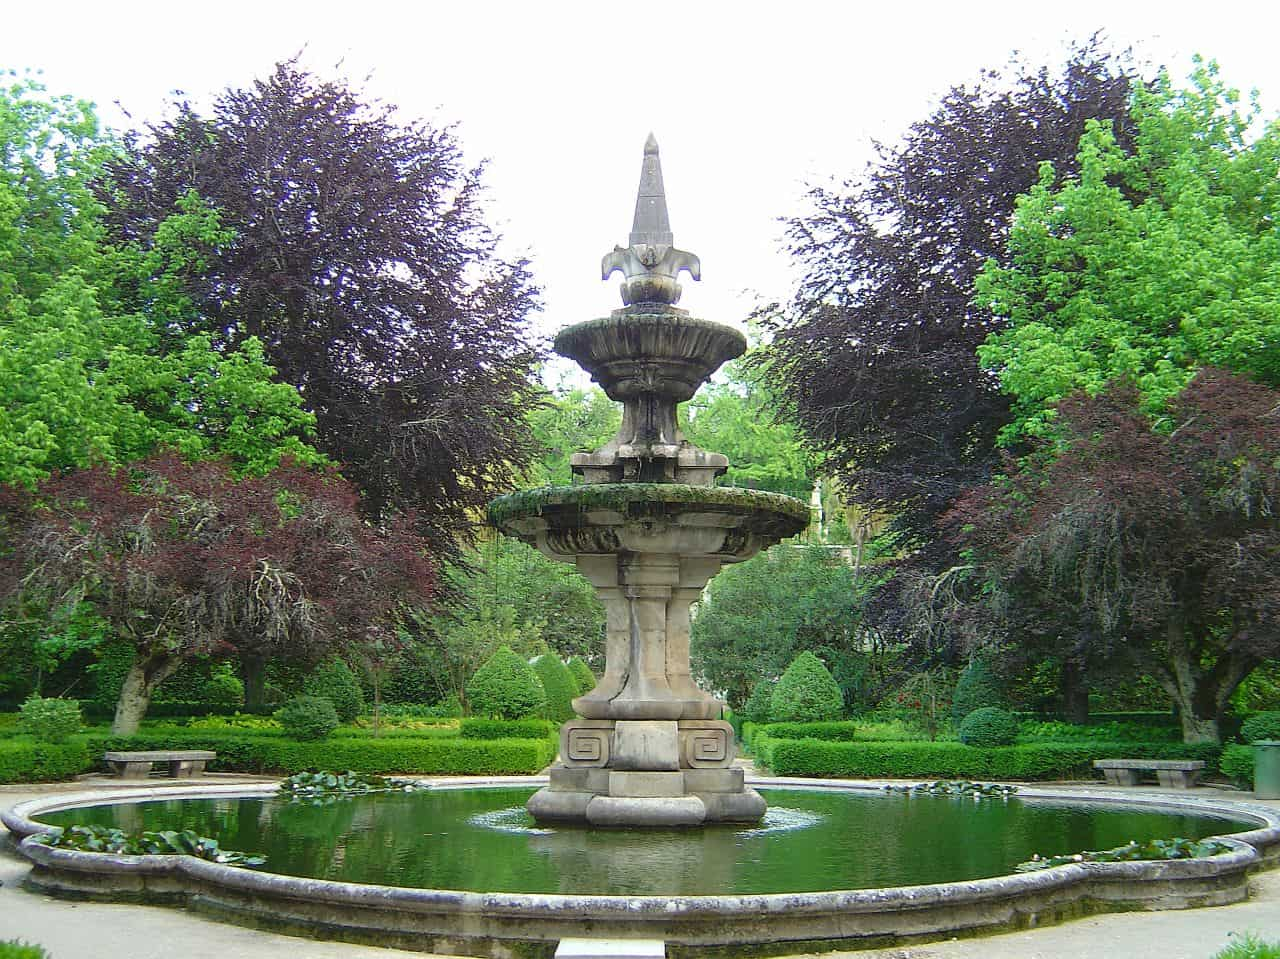 Top 10 most beautiful garden in the world - 10 Botanical Garden Of The University Of Coimbra Coimbra Portugal